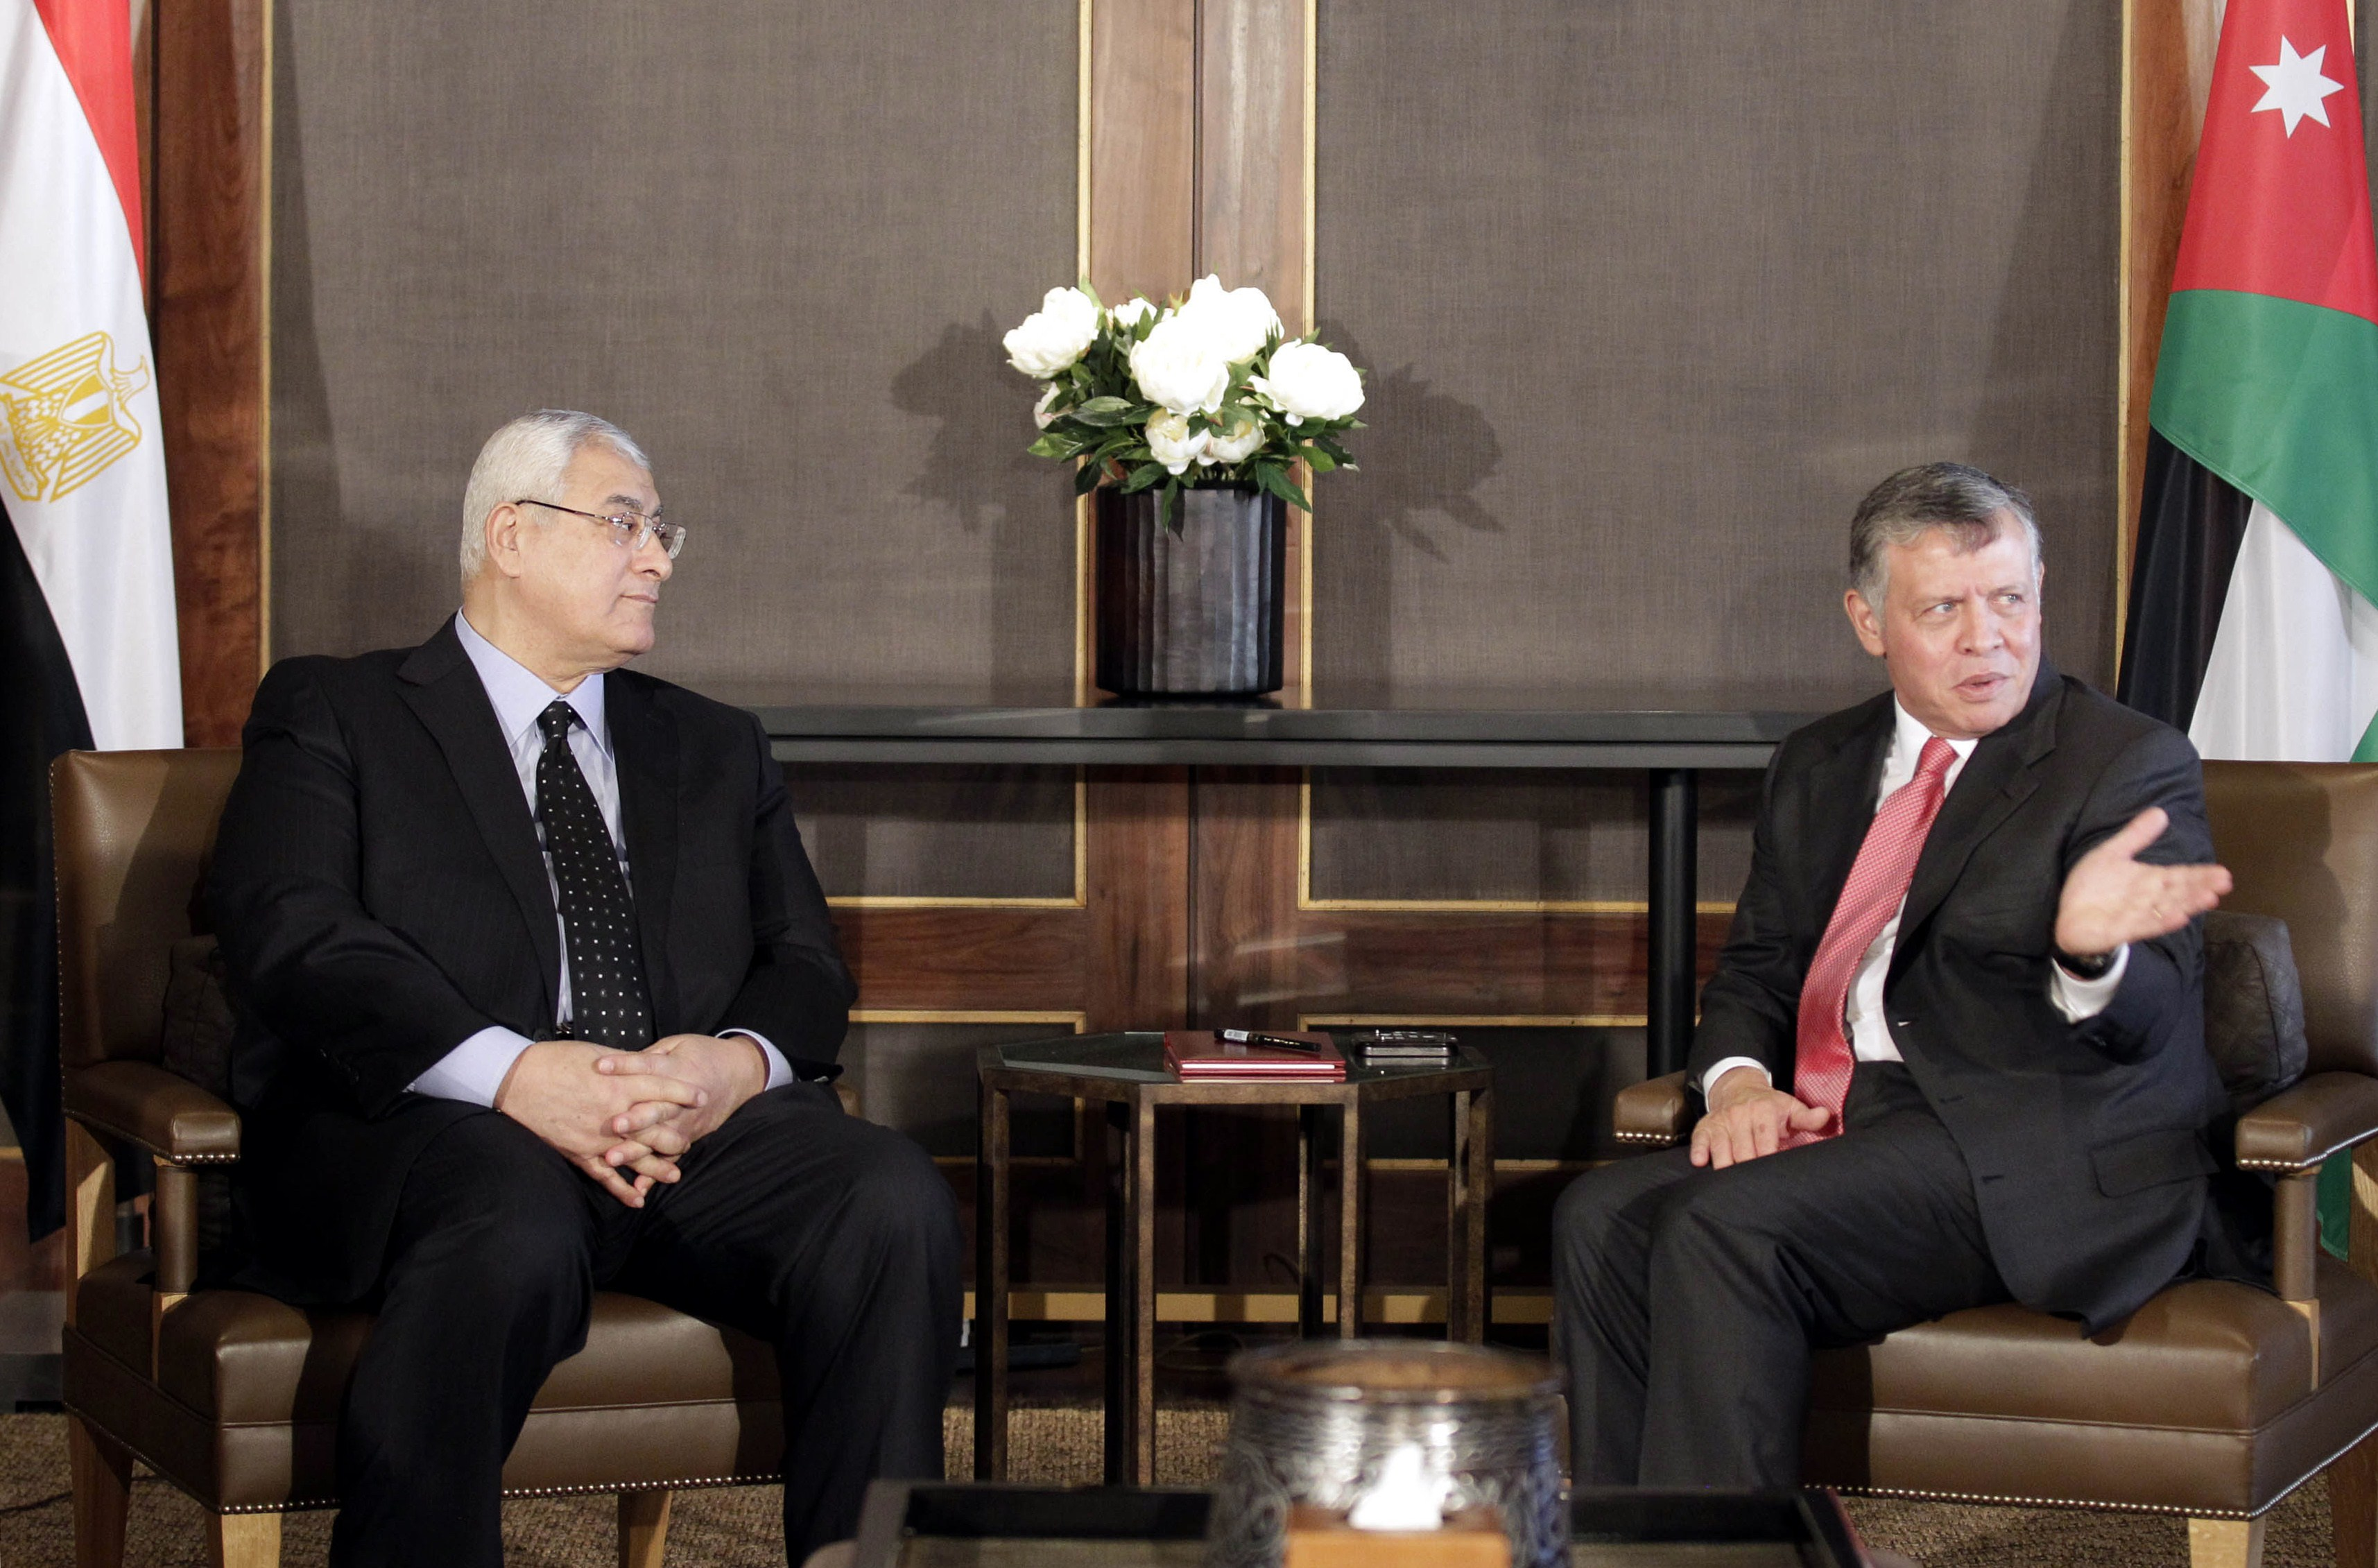 Egyptian interim president Adly Mansour (L) meets with Jordan's King Abdullah II at the Royal Palace in Amman on October 8, 2013.  (AFP PHOTO/KHALIL MAZRAAWI)